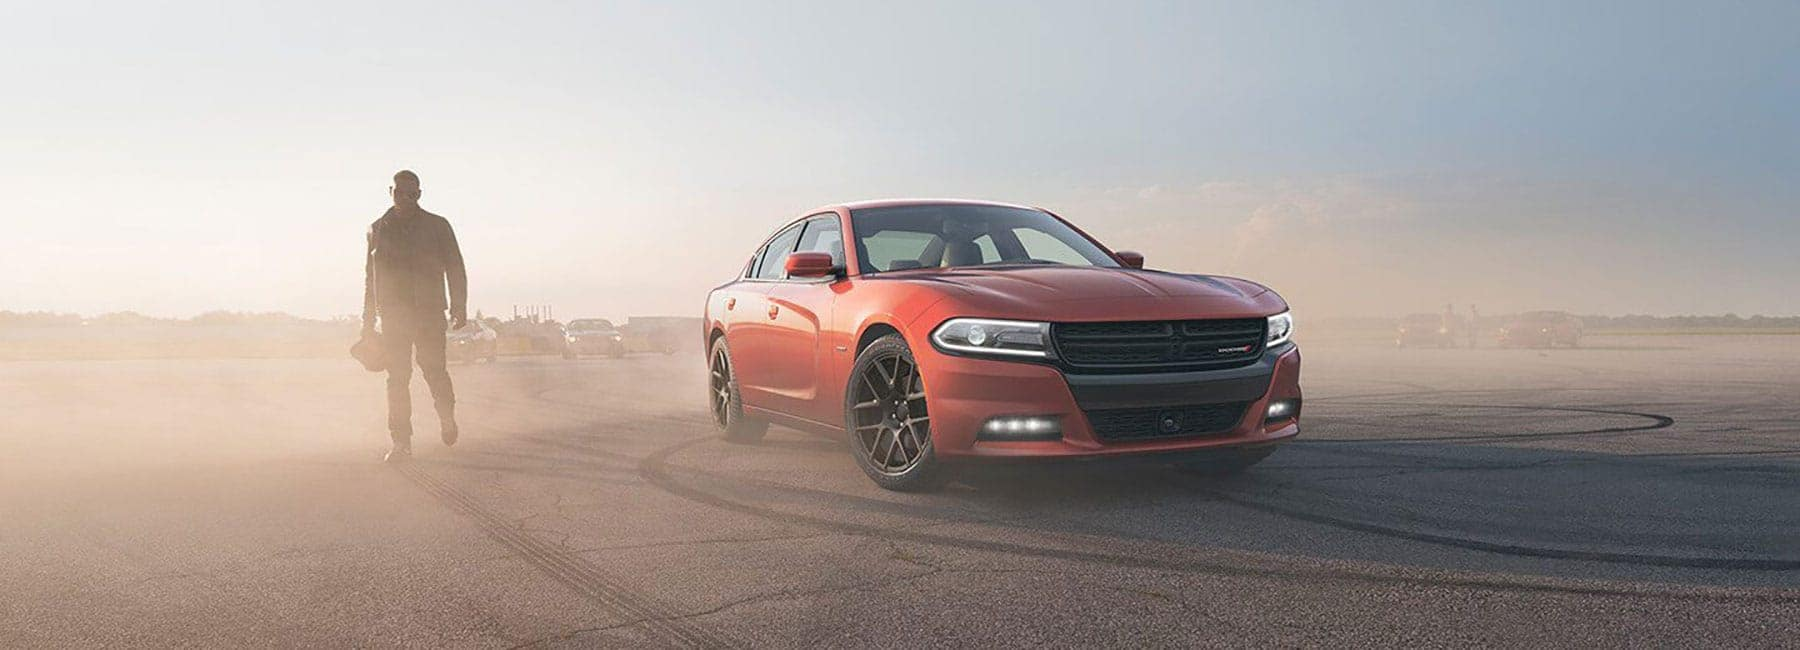 2019-dodge-charger-banner